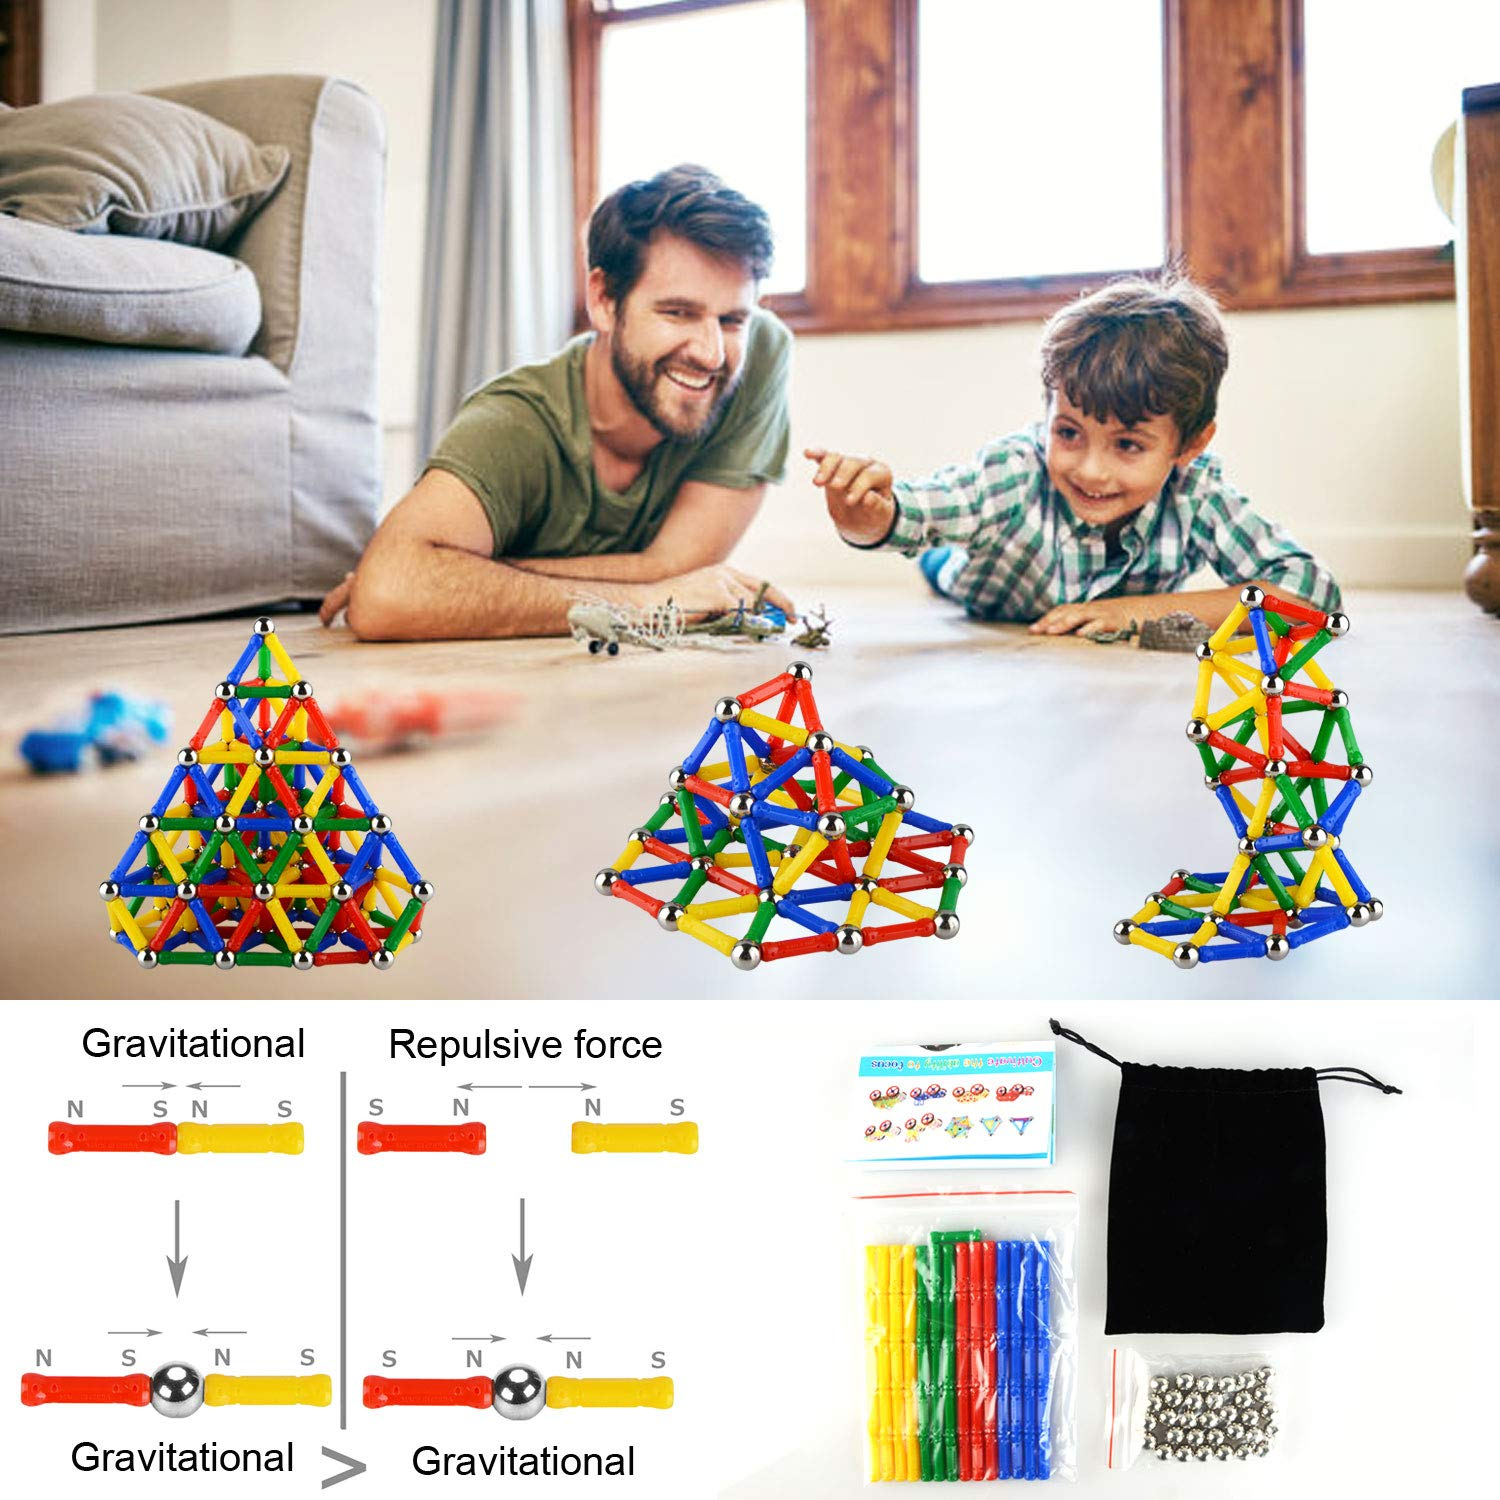 206PCS Magnetic Sticks Magnetic Building Block Construction Stacking Toys Kindergarten Building Stick Set Parent-child Toys Innovative Puzzle Toys for Adults and Kids by Accessorieskits524 (Colors May Vary)